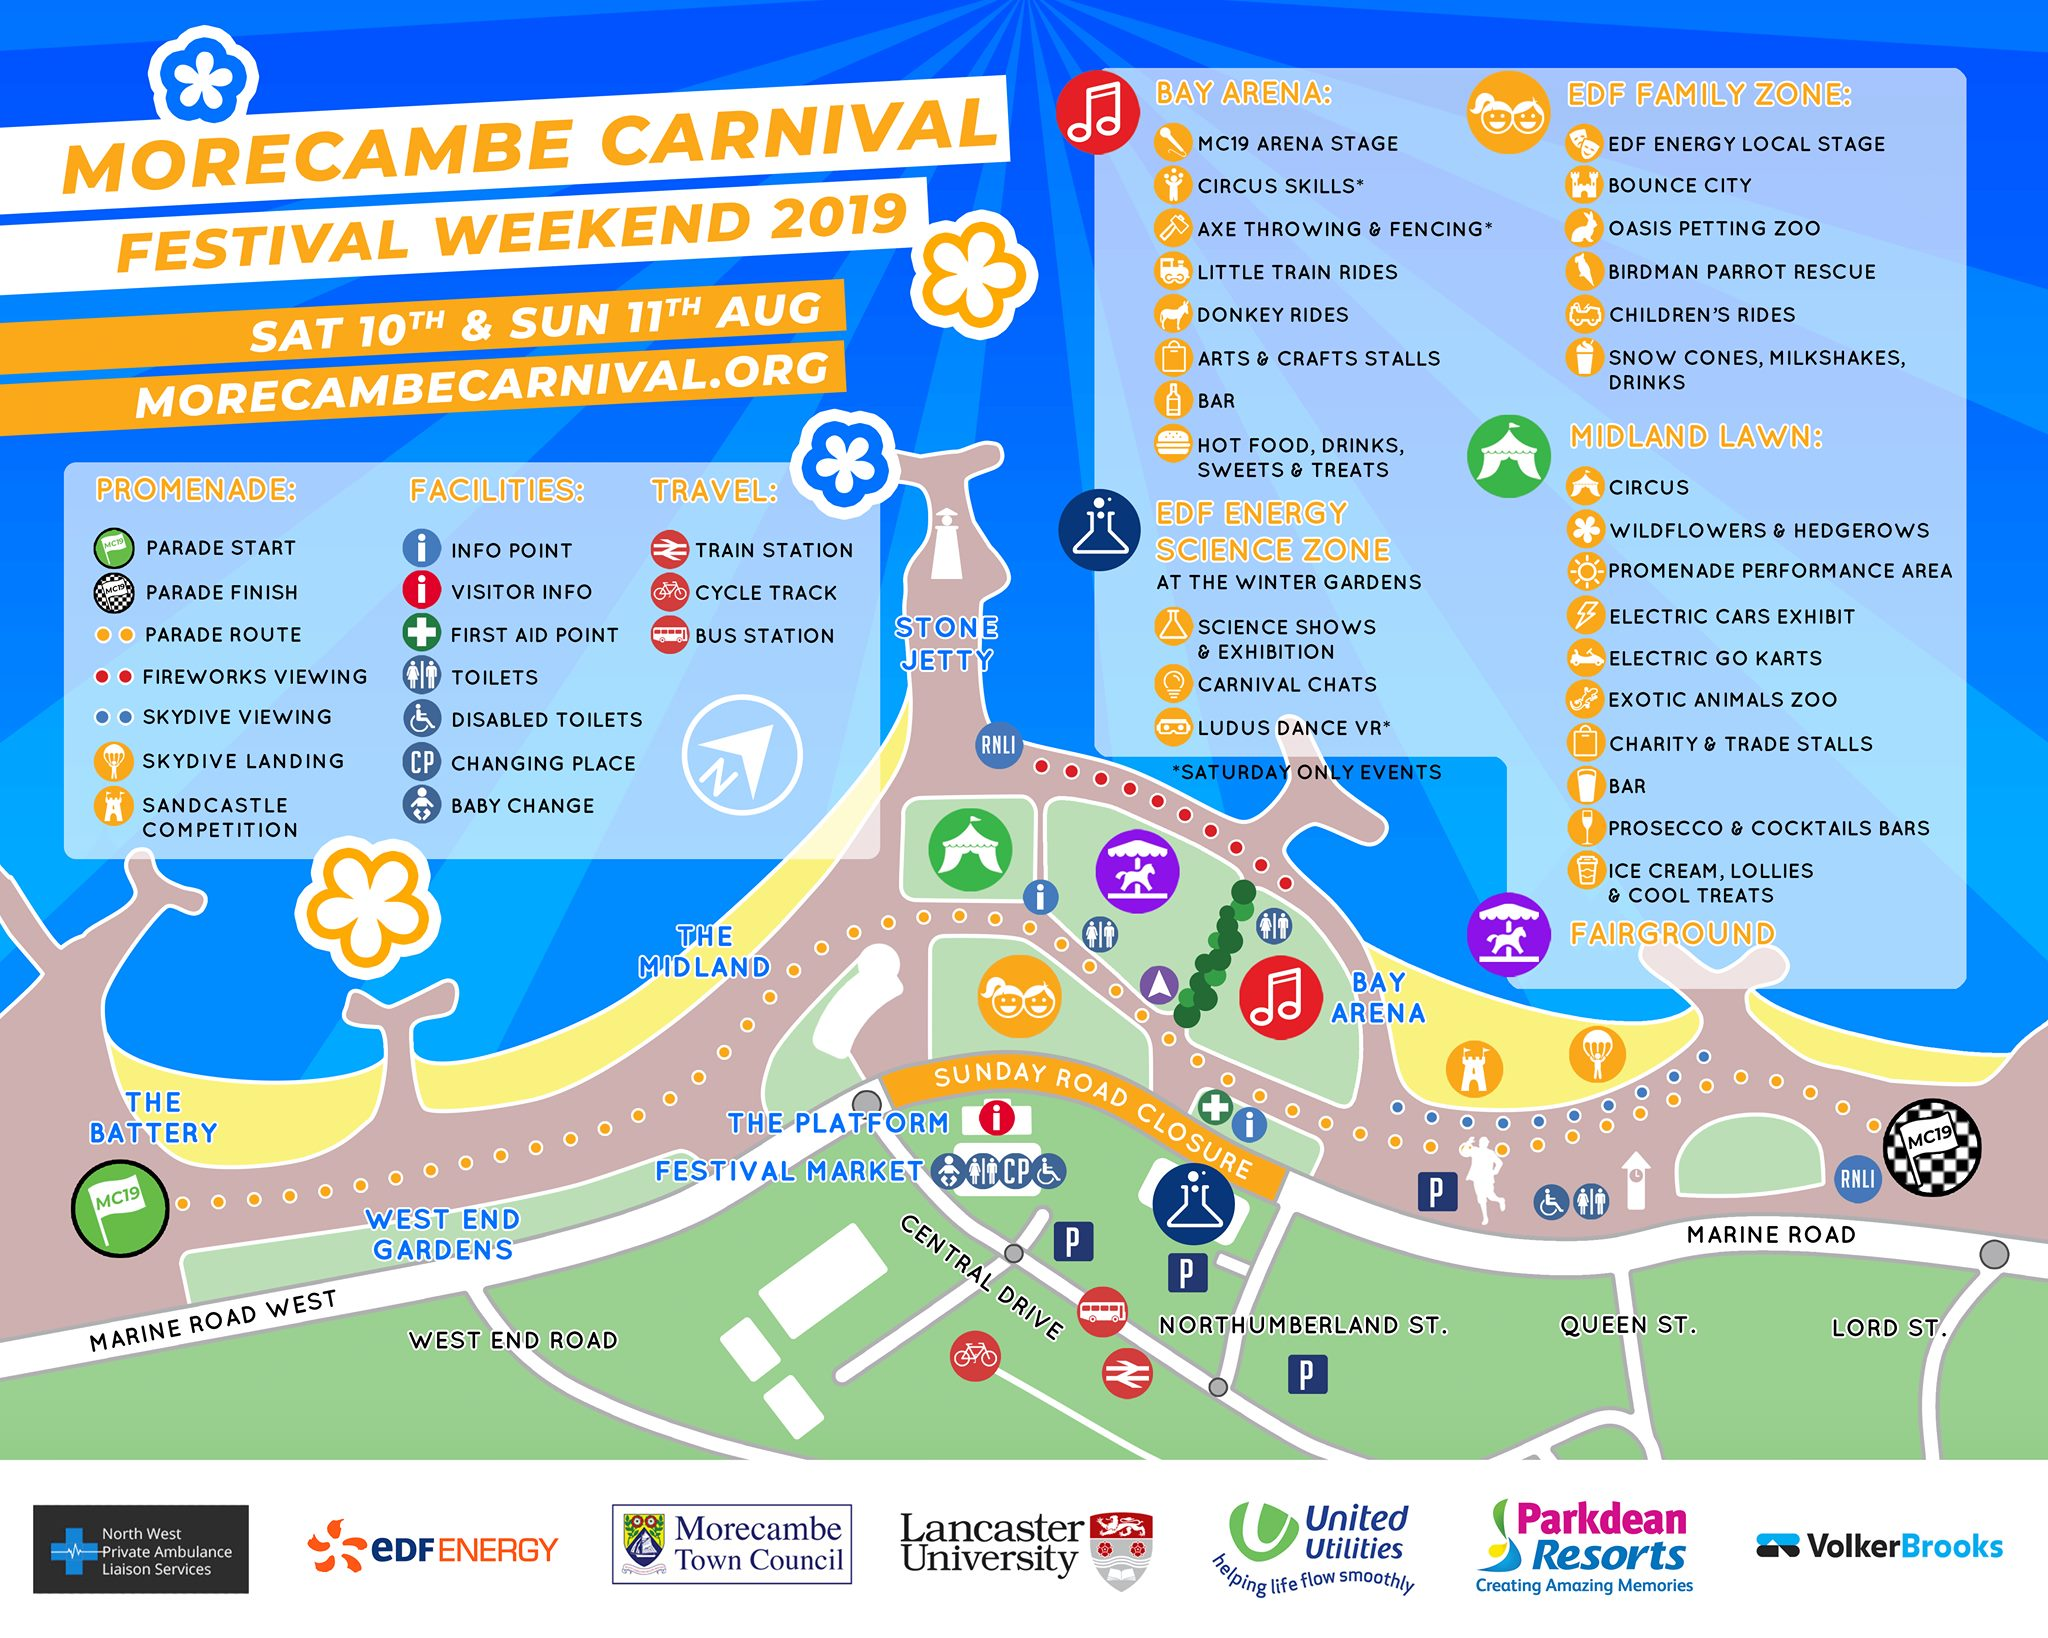 Morecambe Carnival map and information 2019